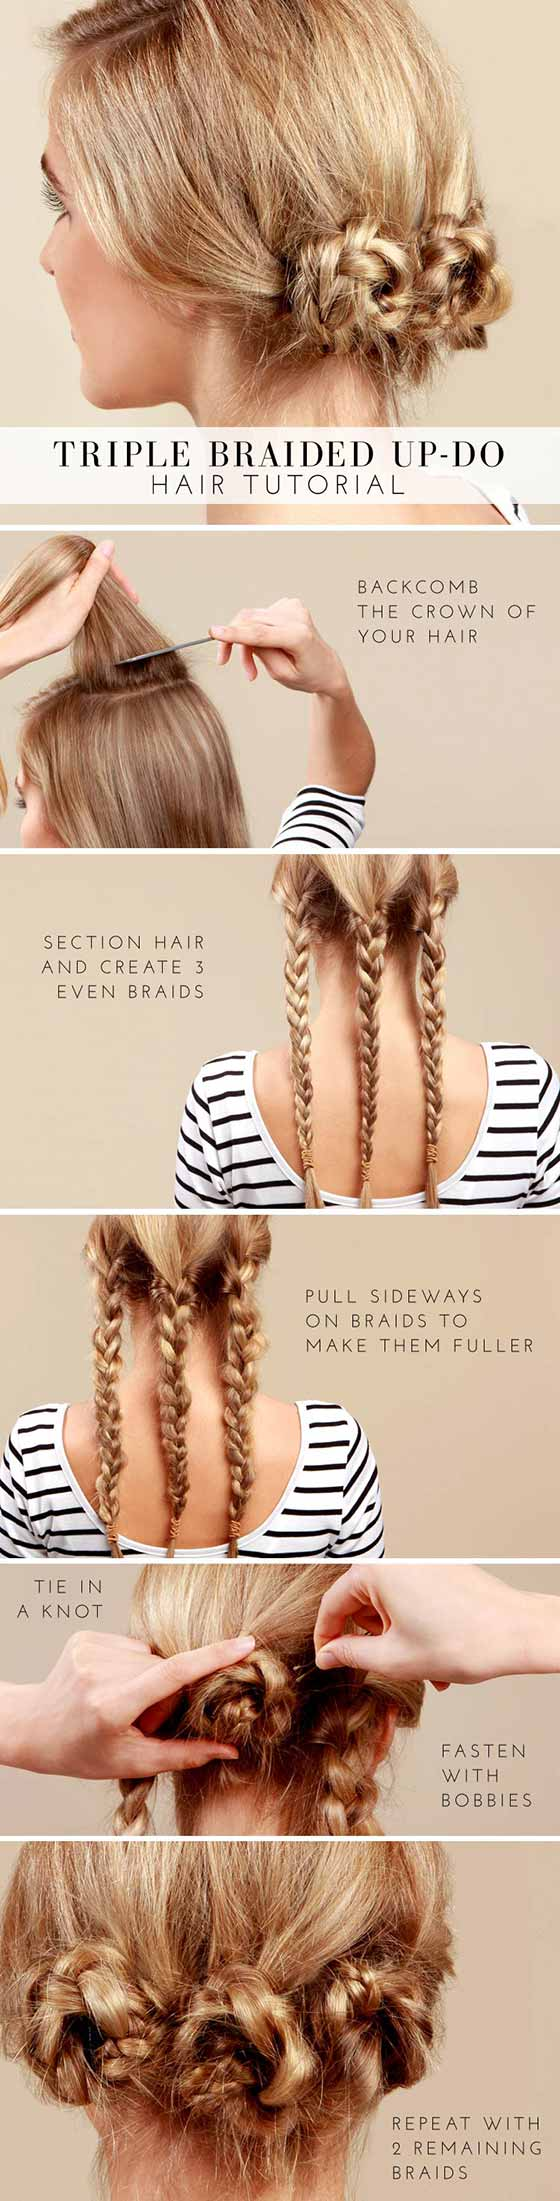 40 Braided Hairstyles For Long Hair Triple Braided Bun